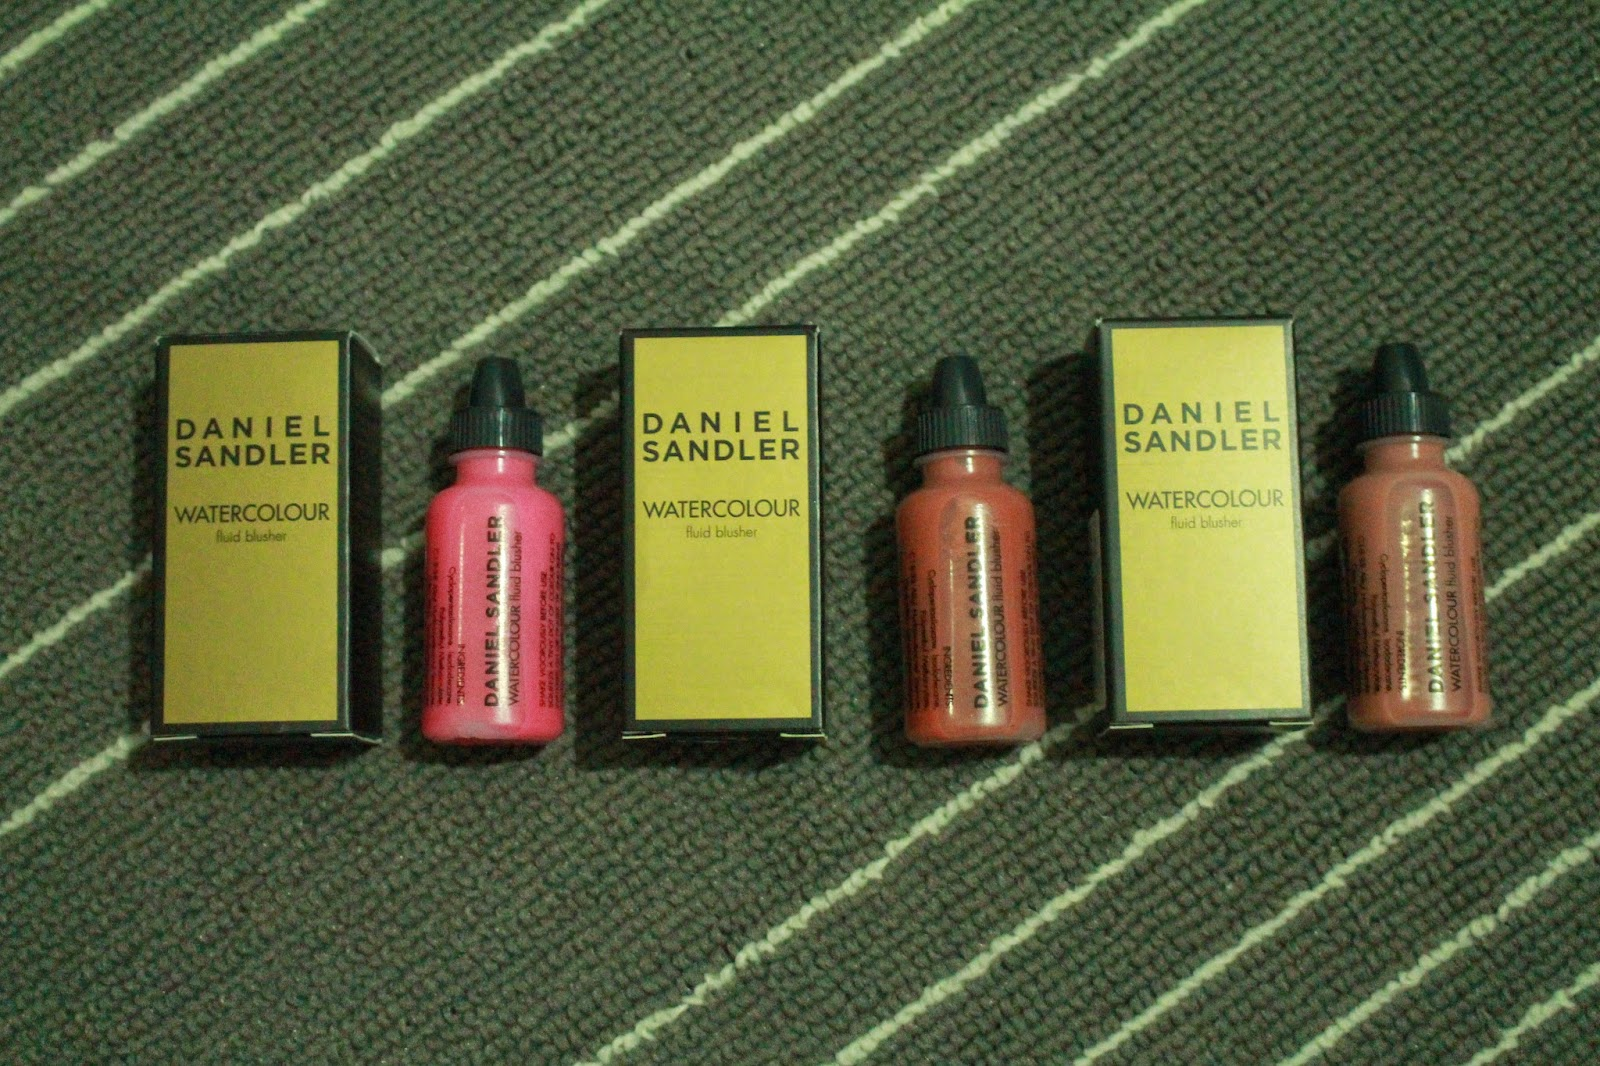 Daniel Sandler Watercolour Fluid Blushers (Acid, Spicey and Glamour)